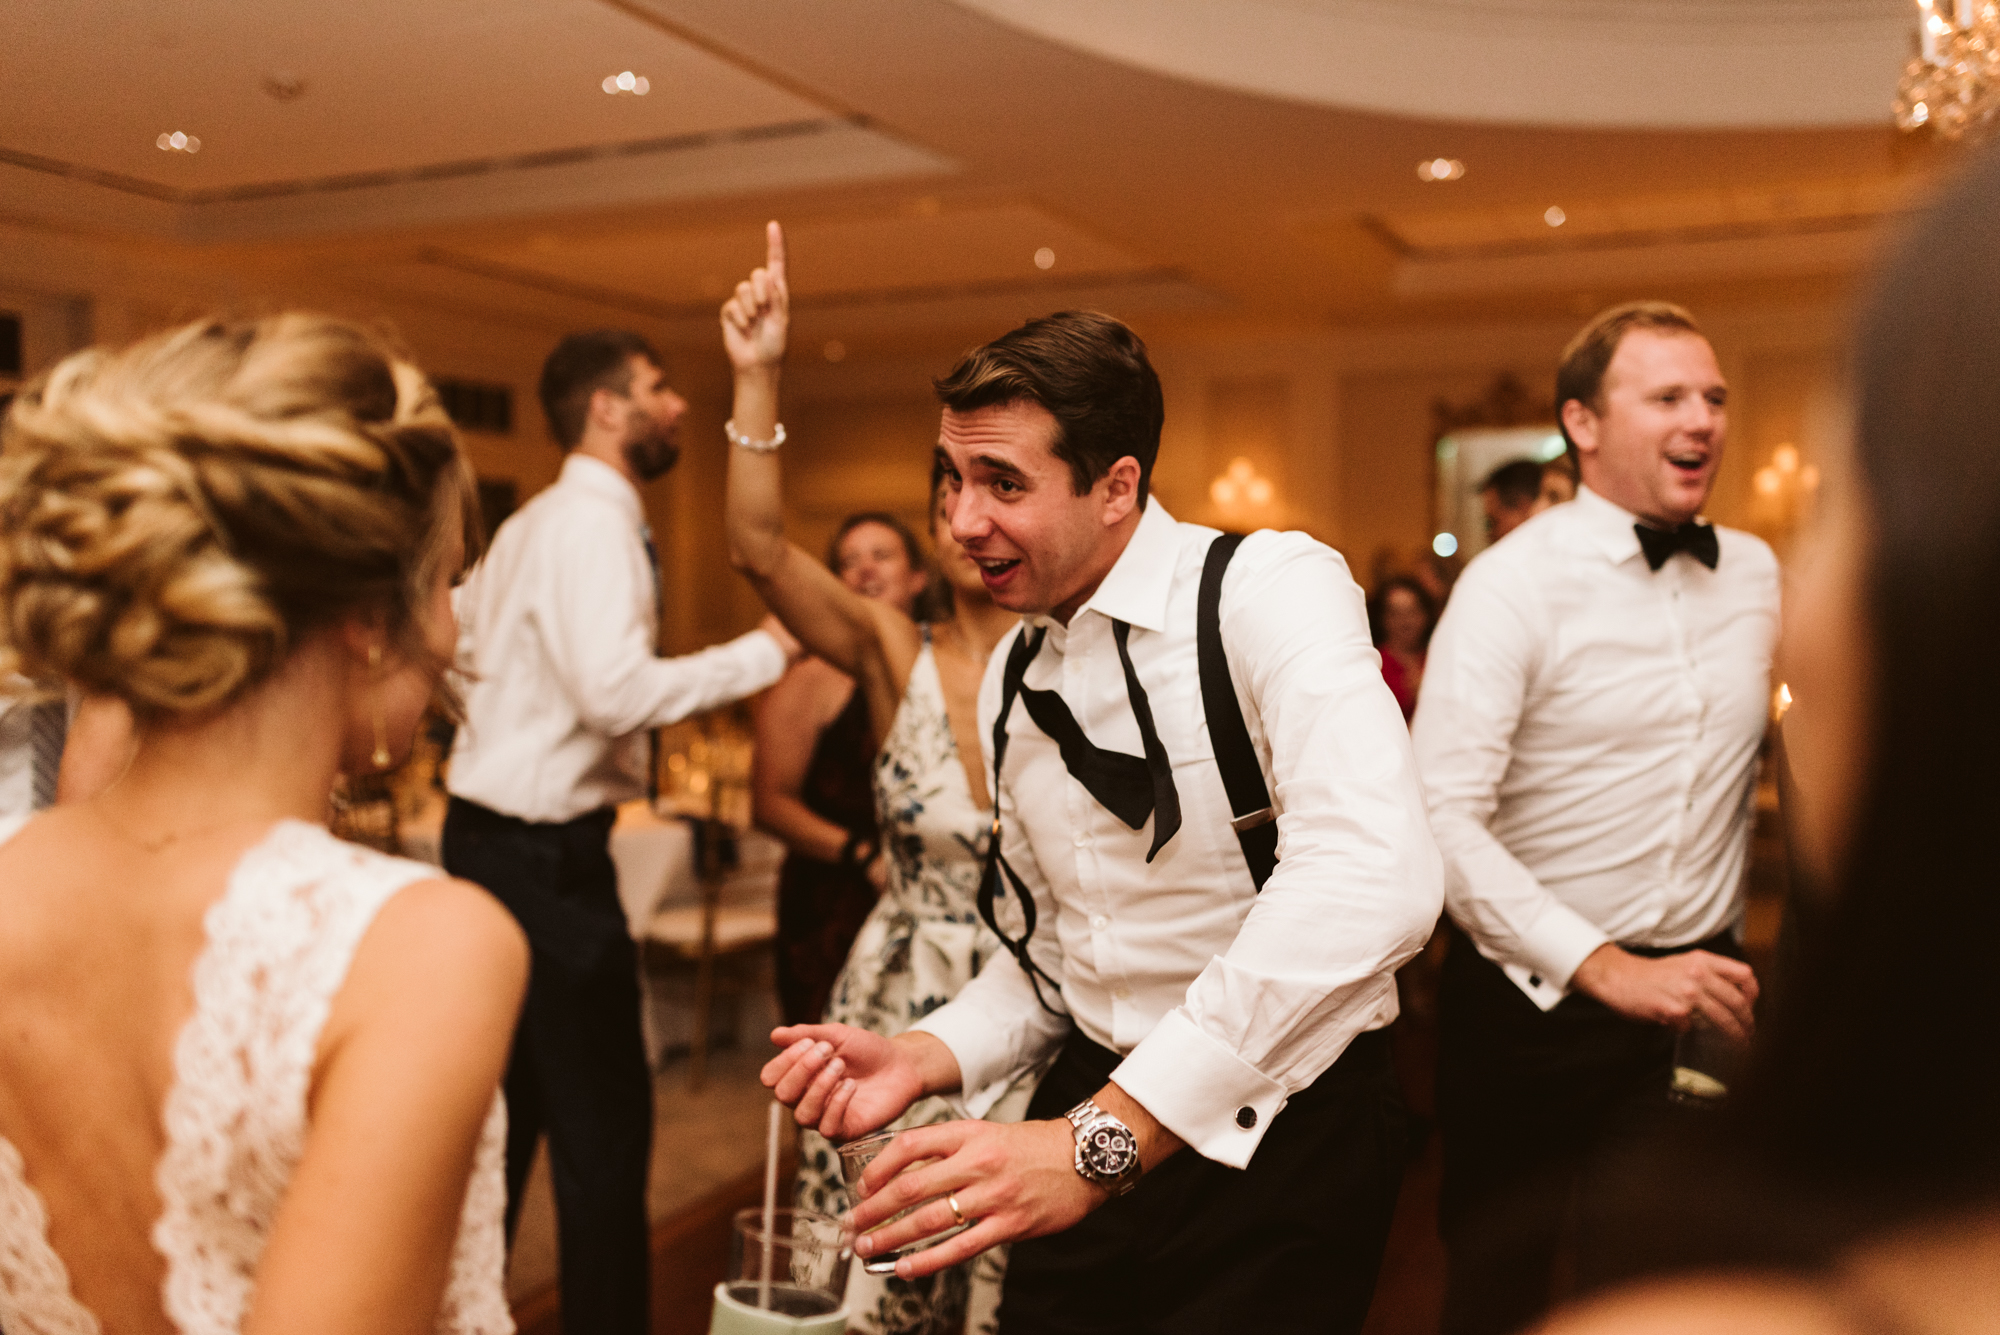 Elegant, Columbia Country Club, Chevy Chase Maryland, Baltimore Wedding Photographer, Classic, Traditional, Groomsmen Dancing with Bride at Wedding Reception